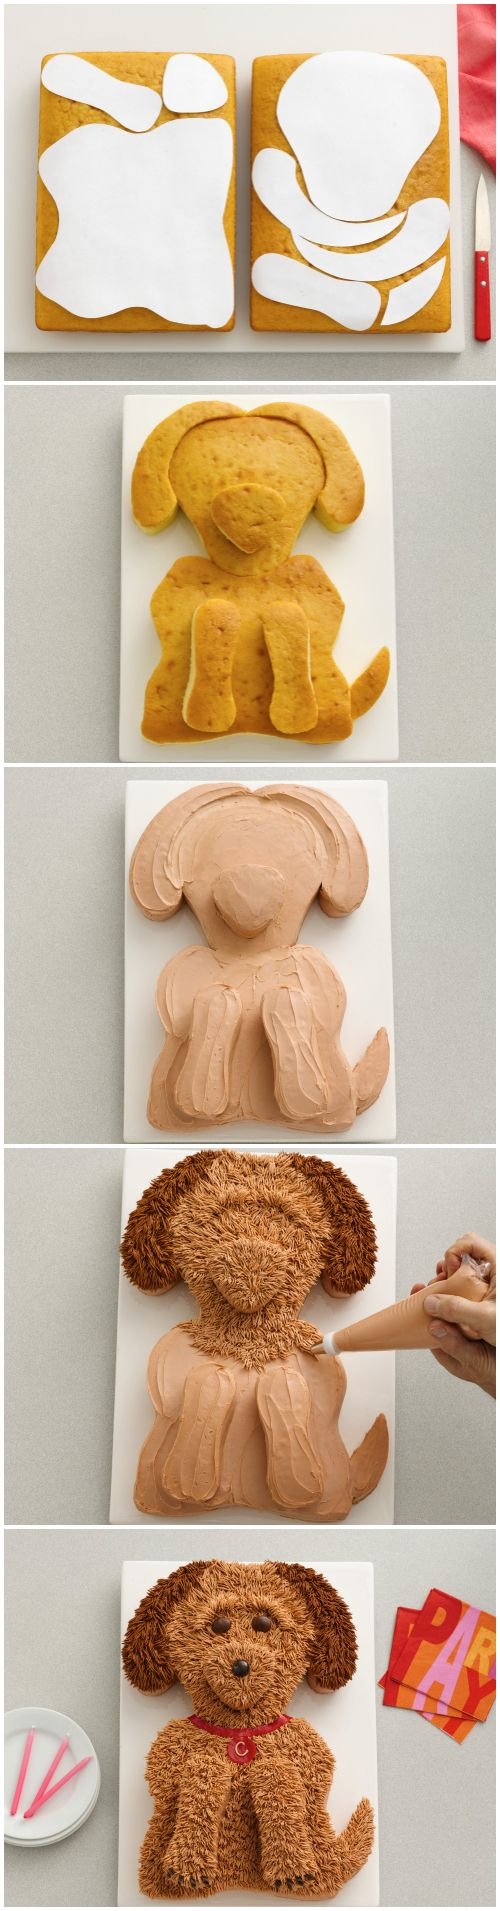 Dog Cake, ridiculous but I can see myself making this cake...